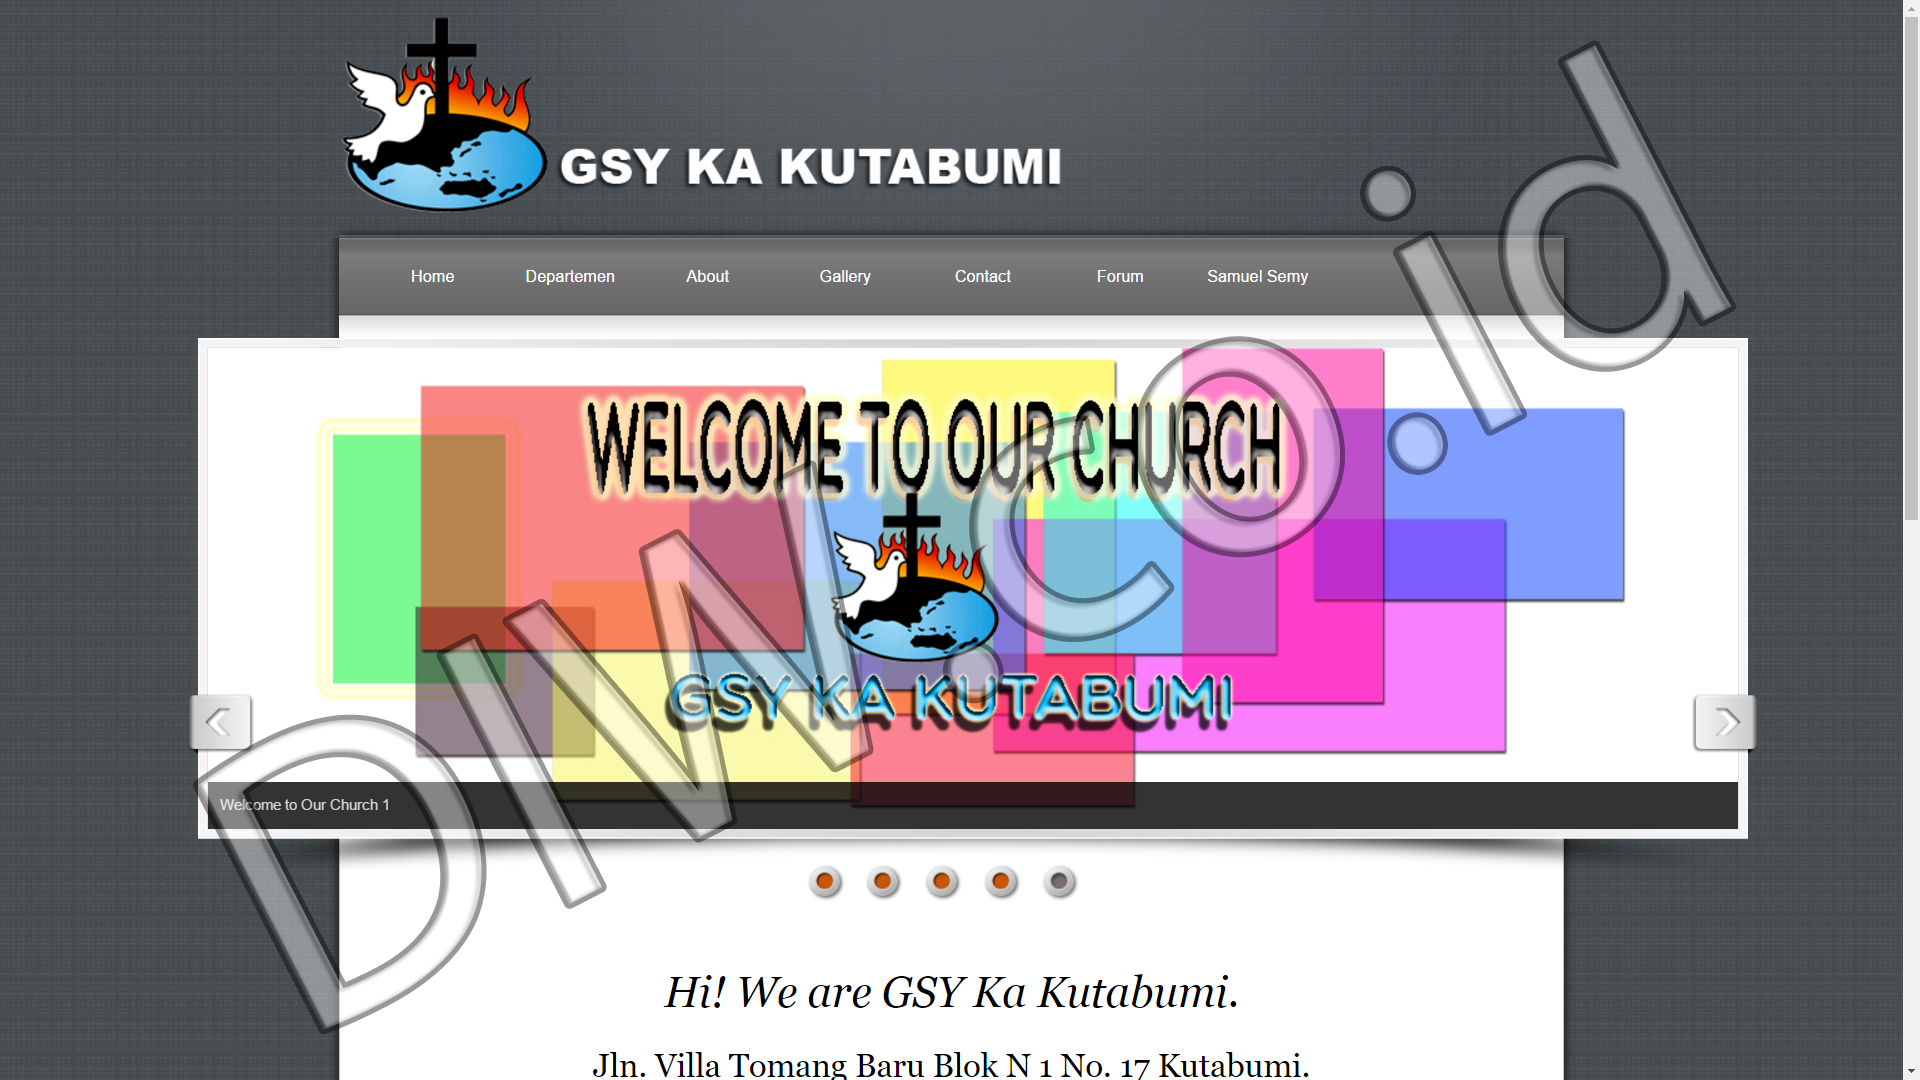 Portfolio 1 - GSY KA Kutabumi - Andri Sunardi - Freelancer - Web Developer - CEO DIW.co.id